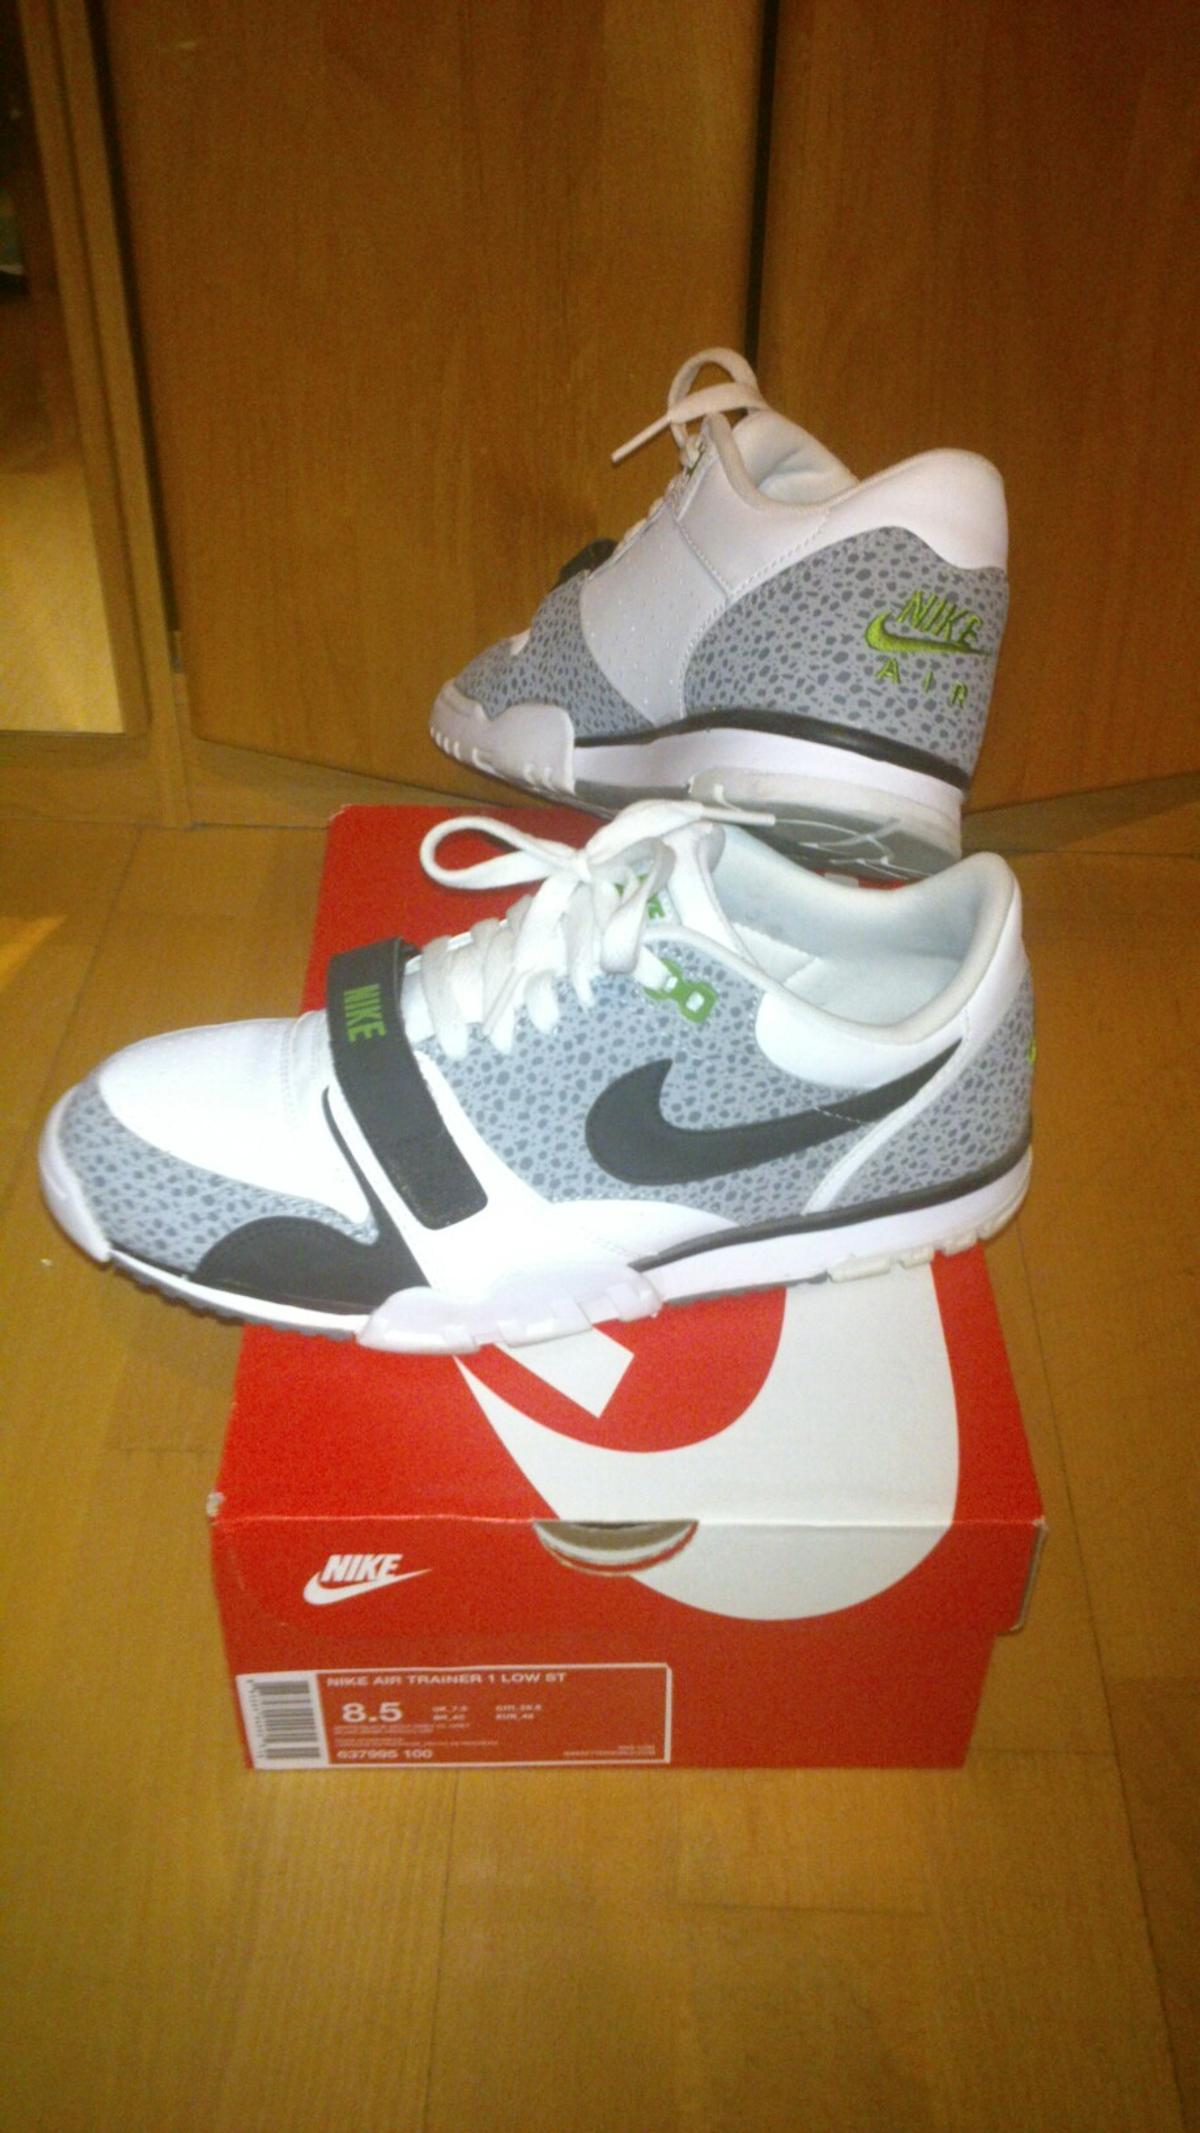 Nike Air Max Neu in 1220 wien for €65.00 for sale | Shpock